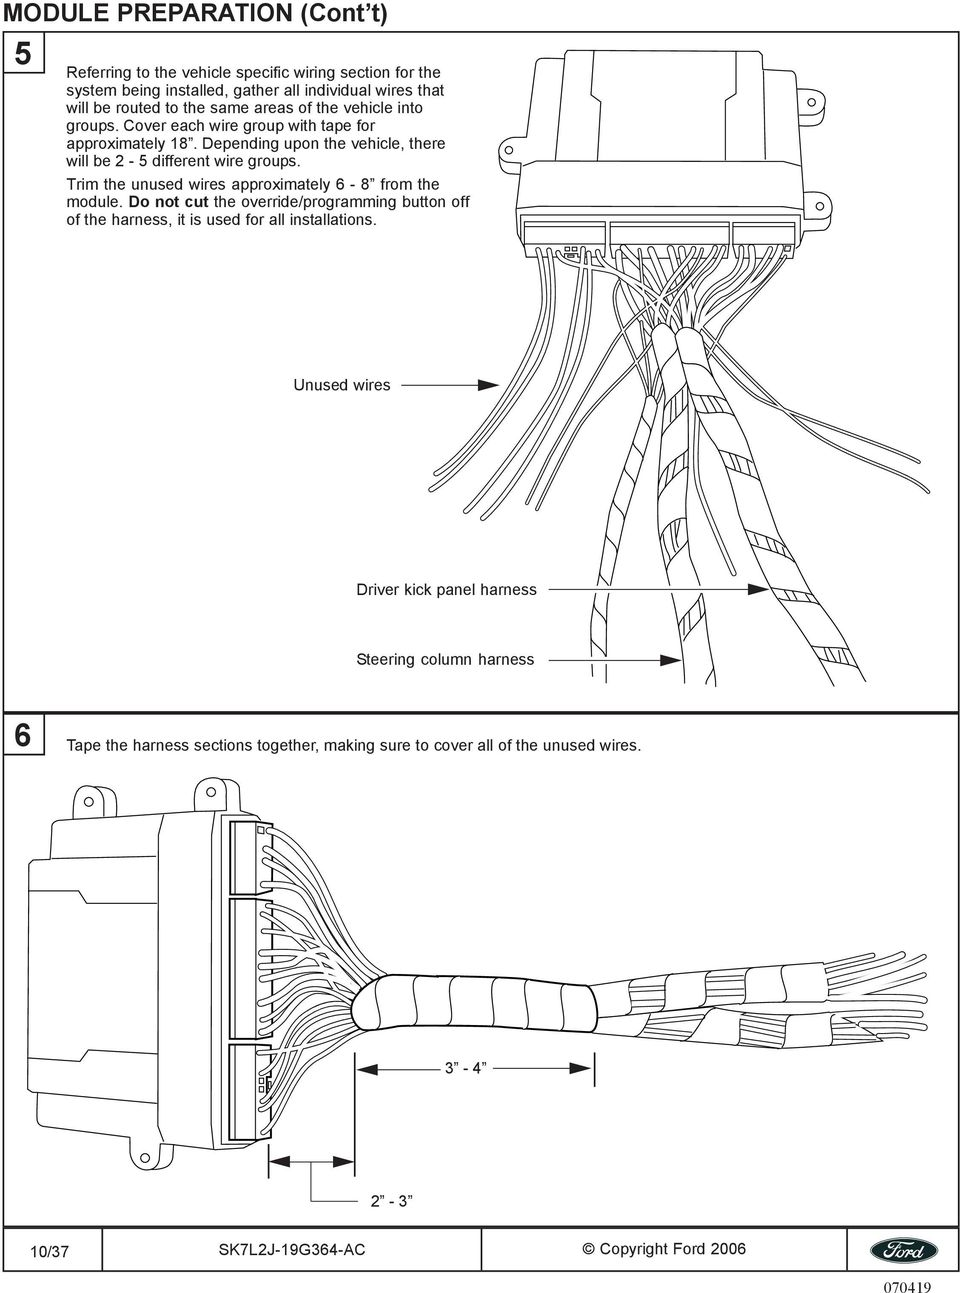 All Models 2007 Use Caution Pdf Ford Wiring Harness Tape Trim The Unused Wires Approximately 6 8 From Module Do Not Cut